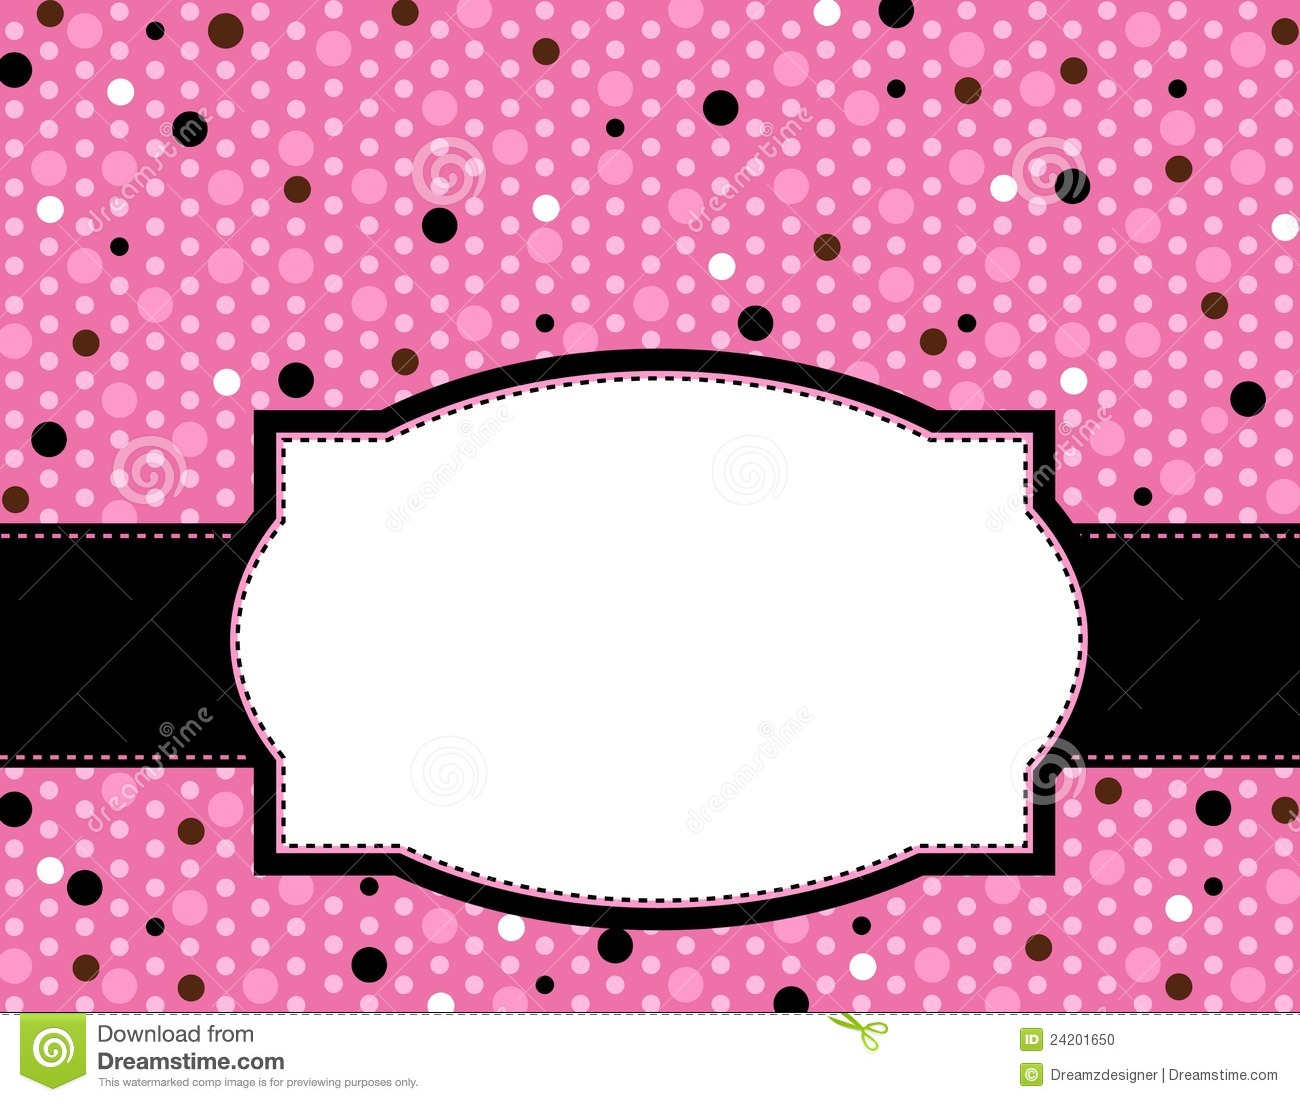 Cute polka dots design with pink ribbon and doodle frame for Dots design apartment 8